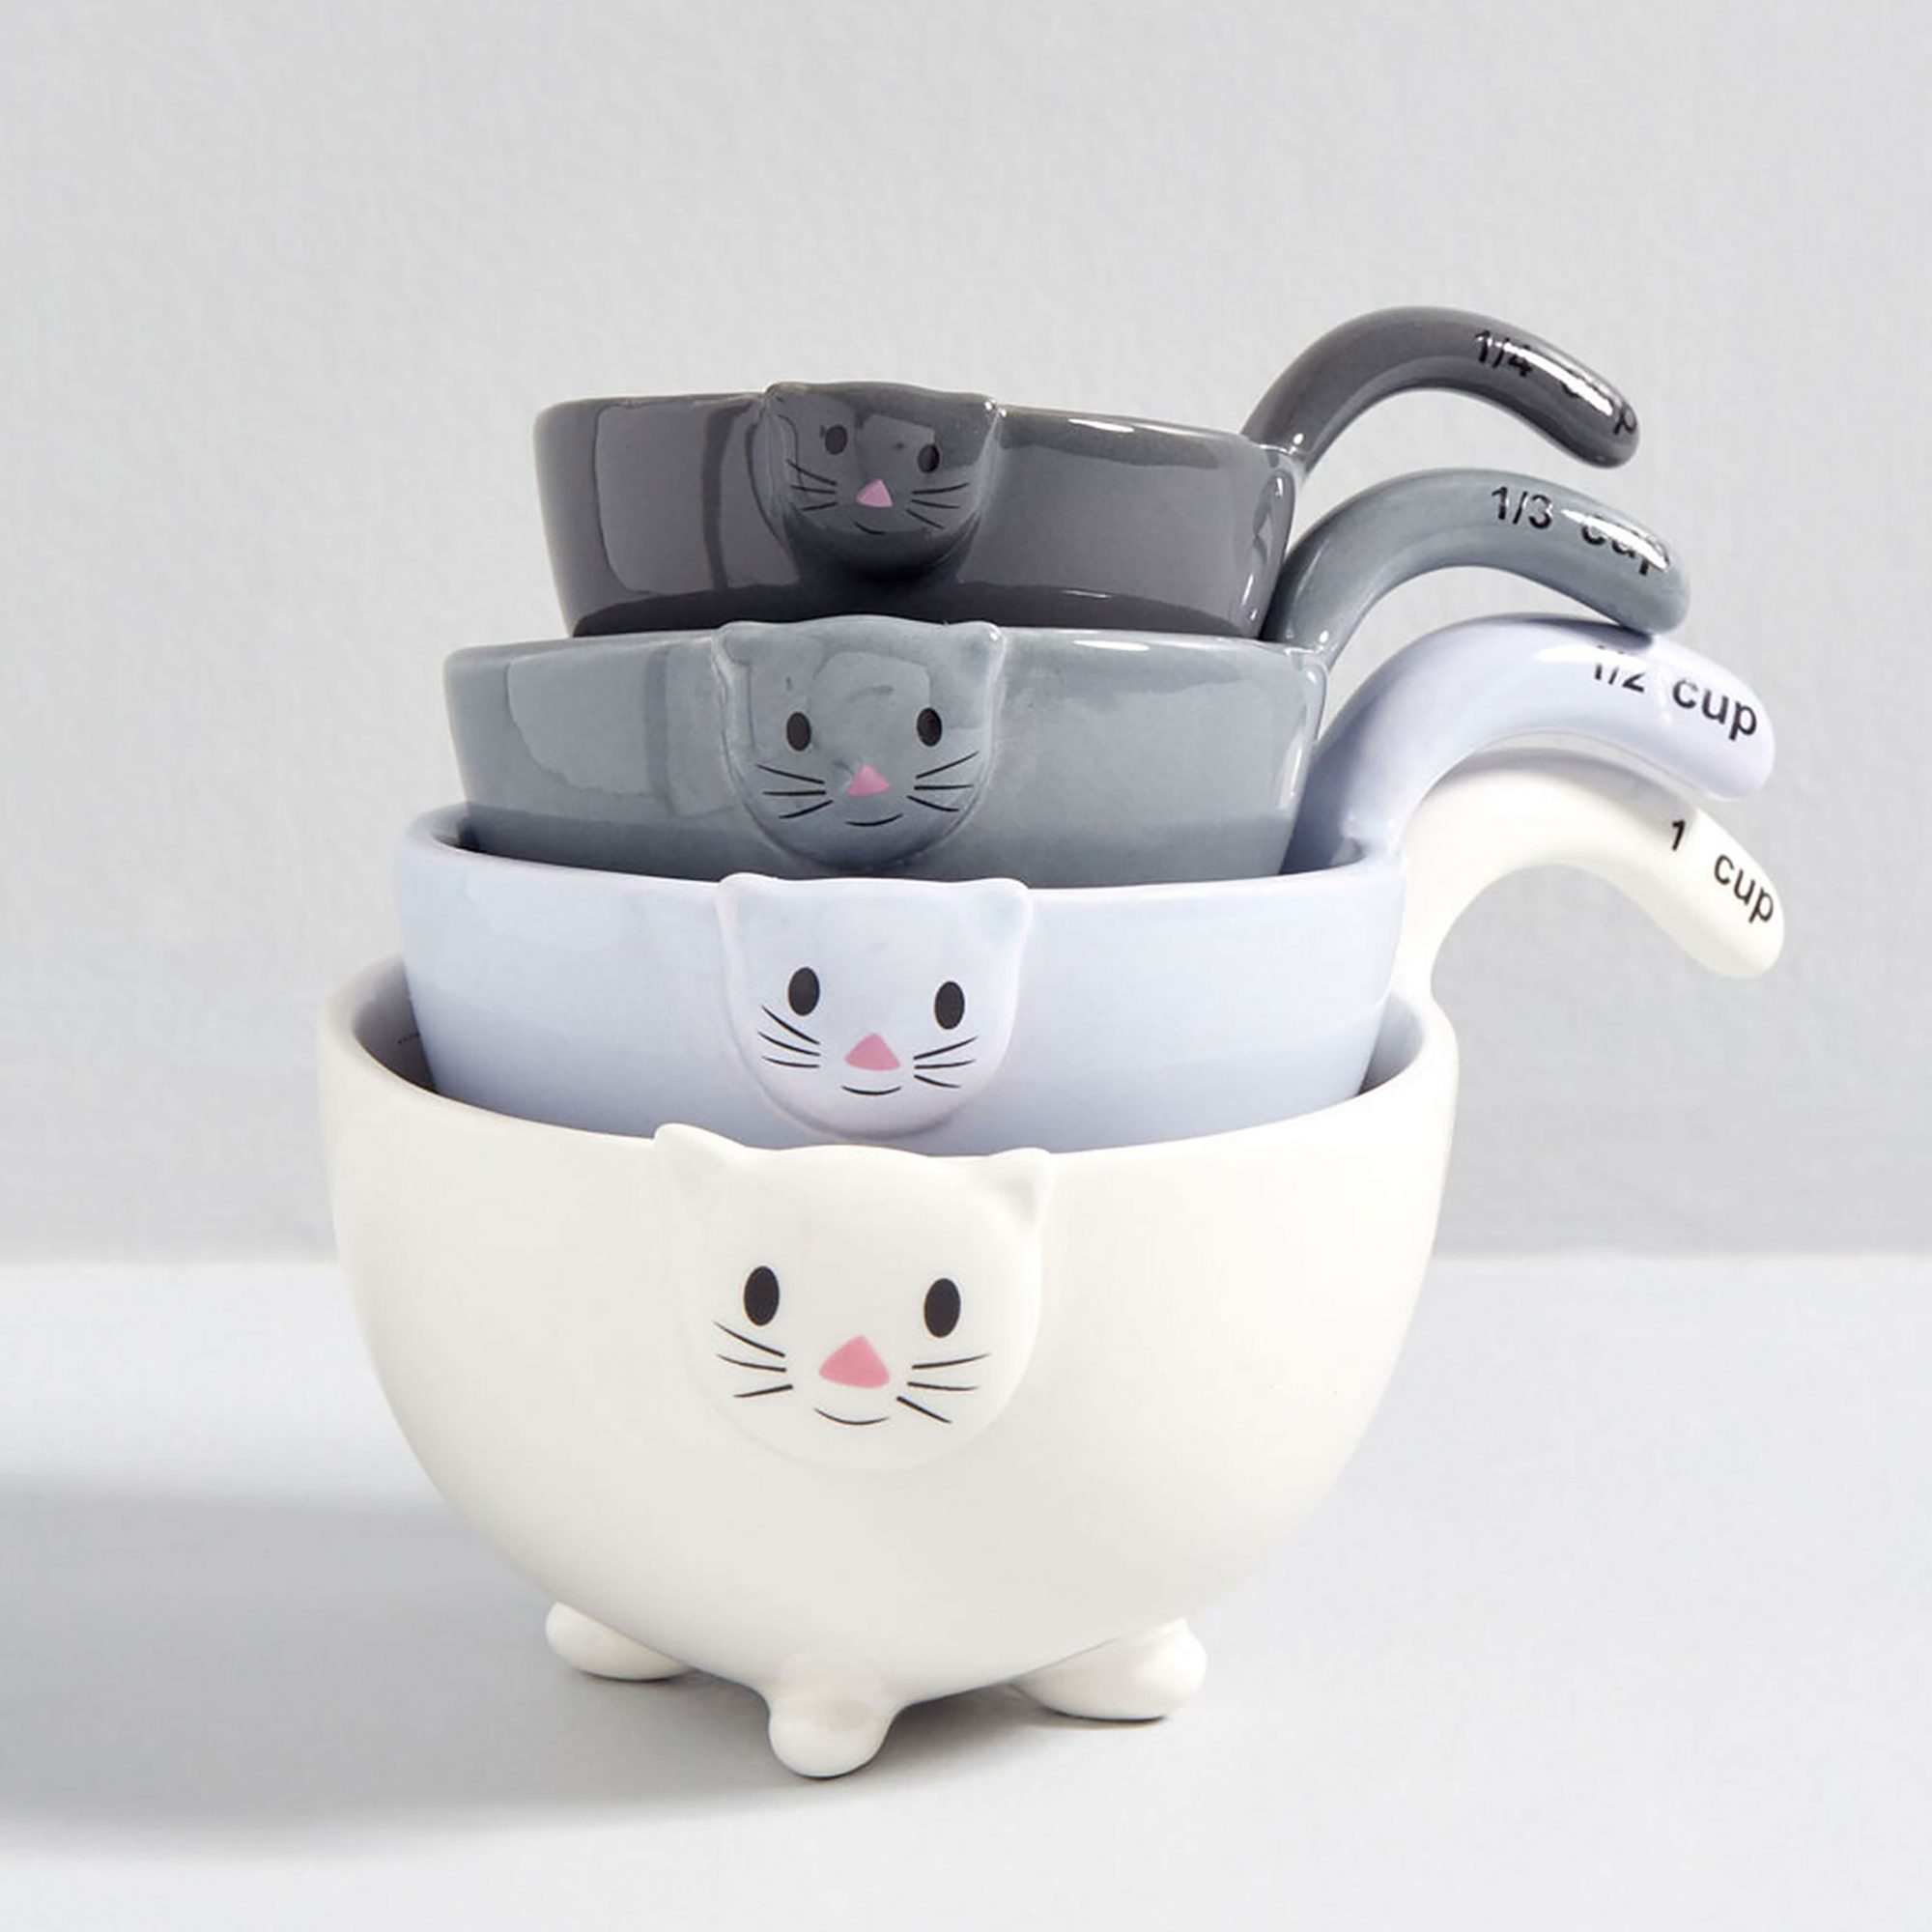 Stack of measuring cups shaped like cats